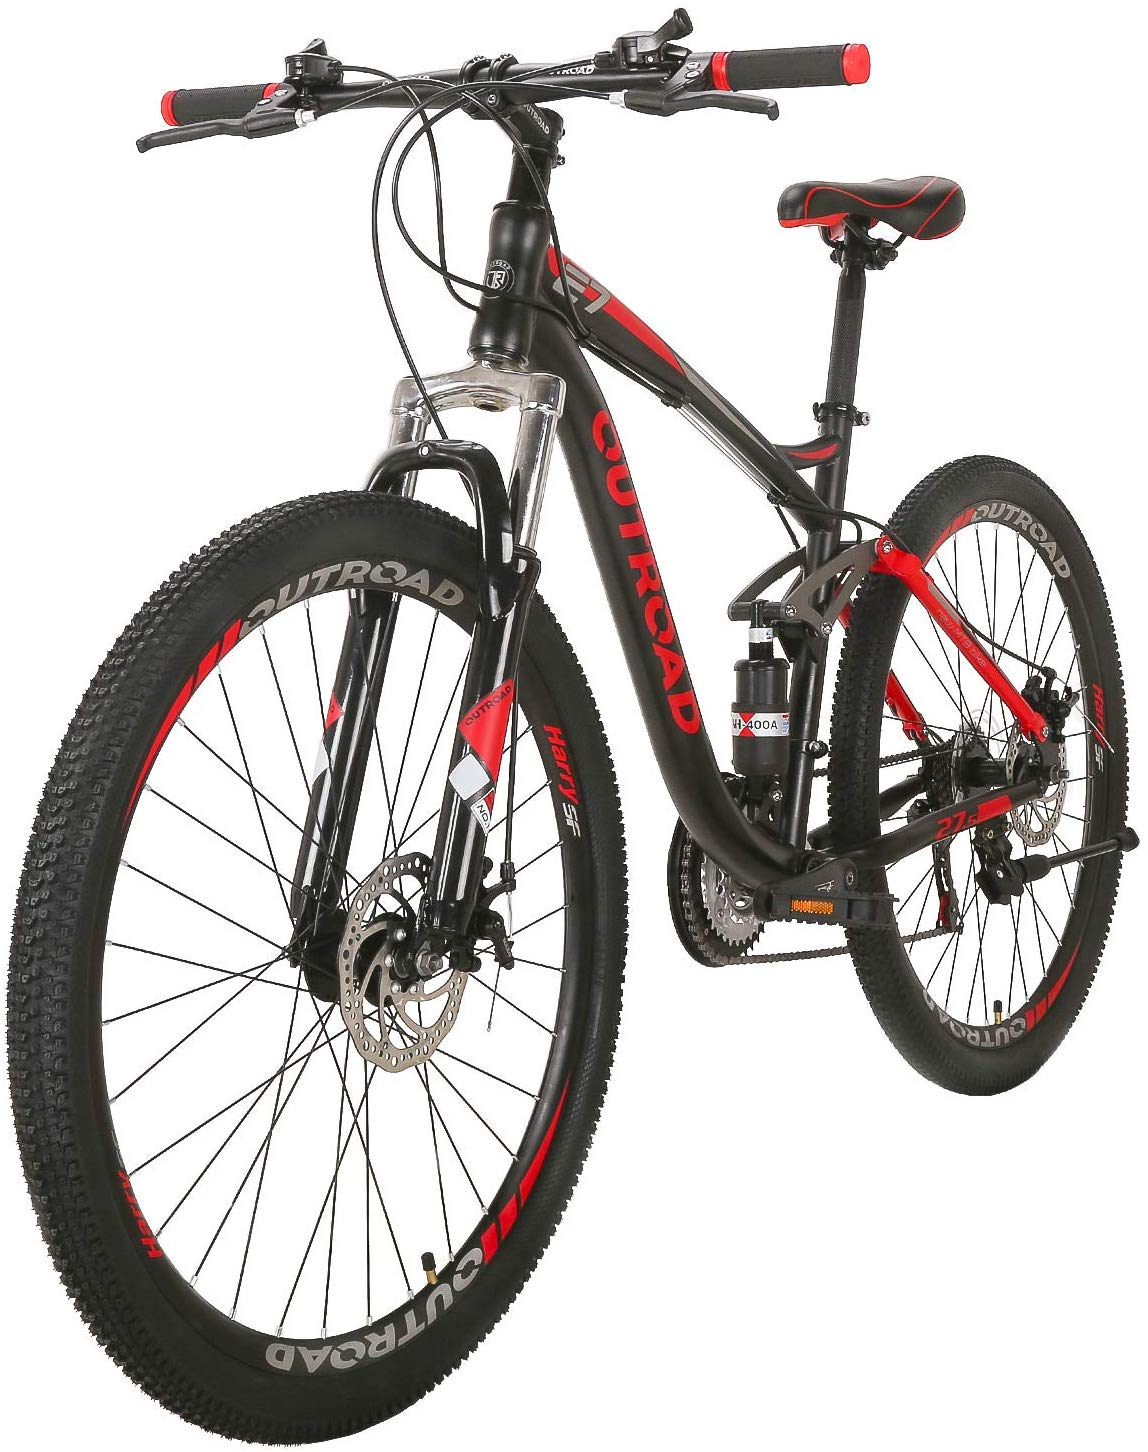 Max4out Mountain Bike